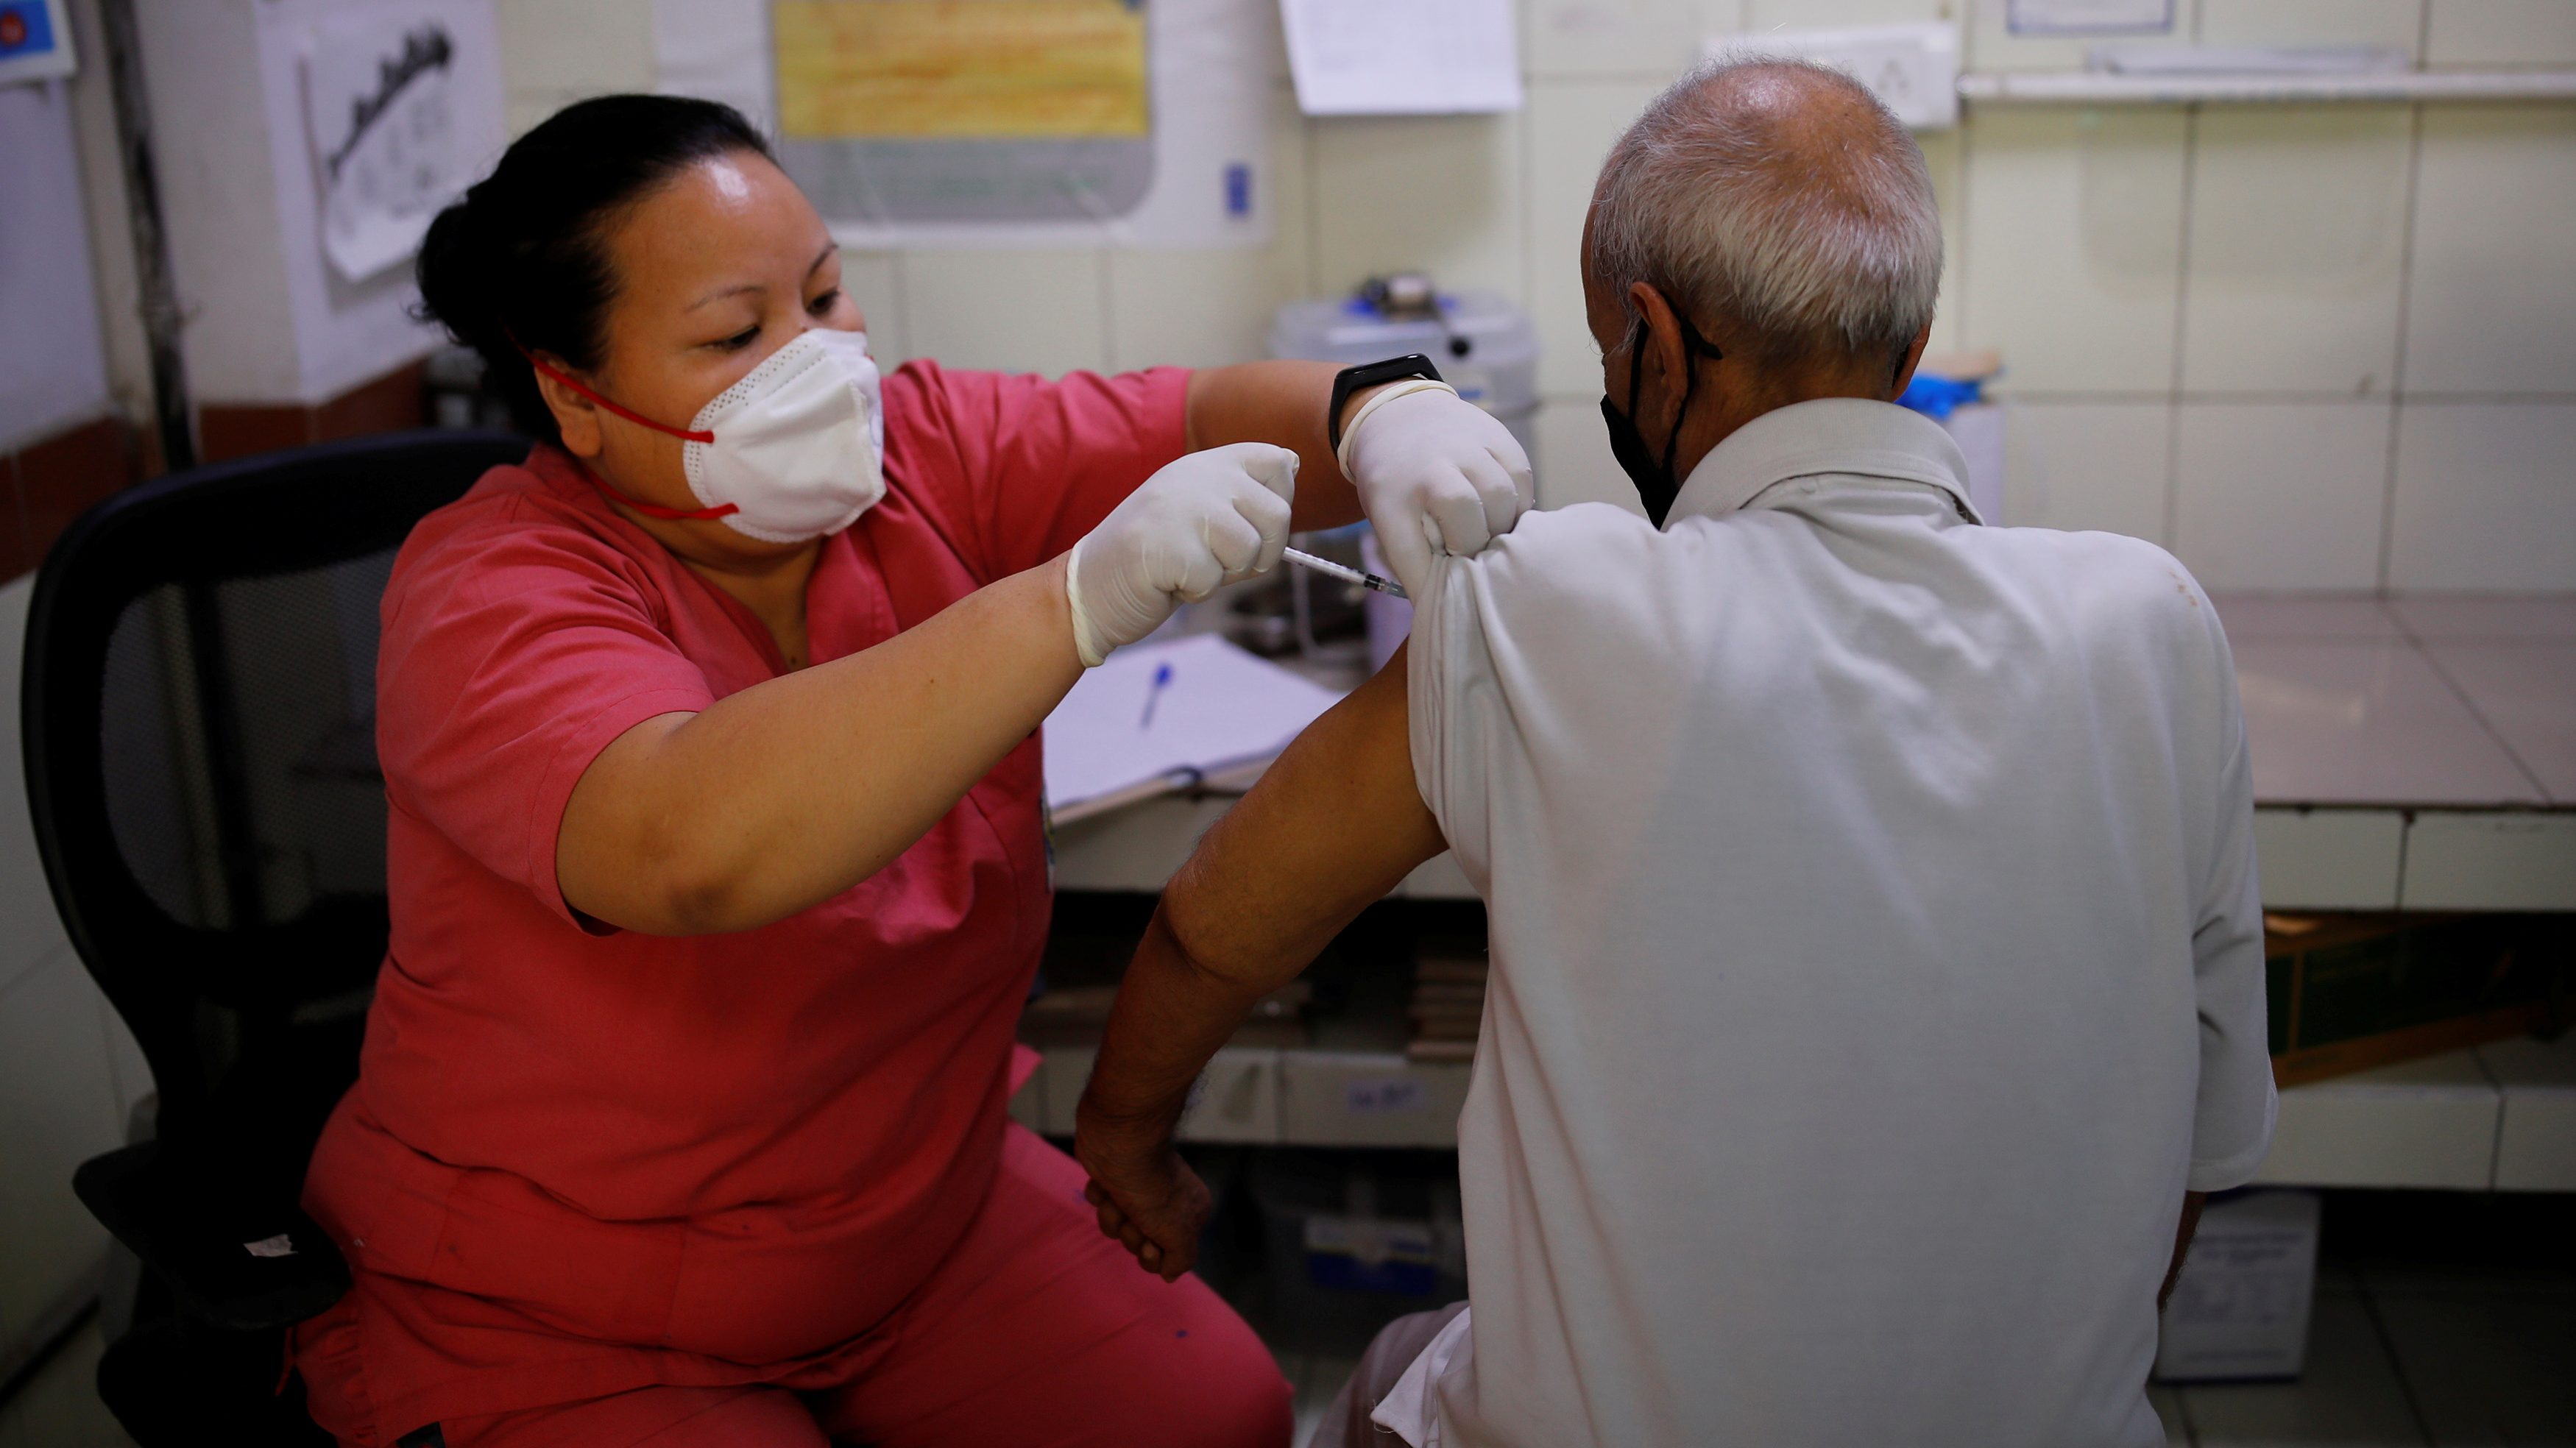 A 69 year old man receives a dose of COVISHIELD vaccine, a coronavirus disease (COVID-19) vaccine, manufactured by Serum Insitutue of India, at a hospital, in New Delhi